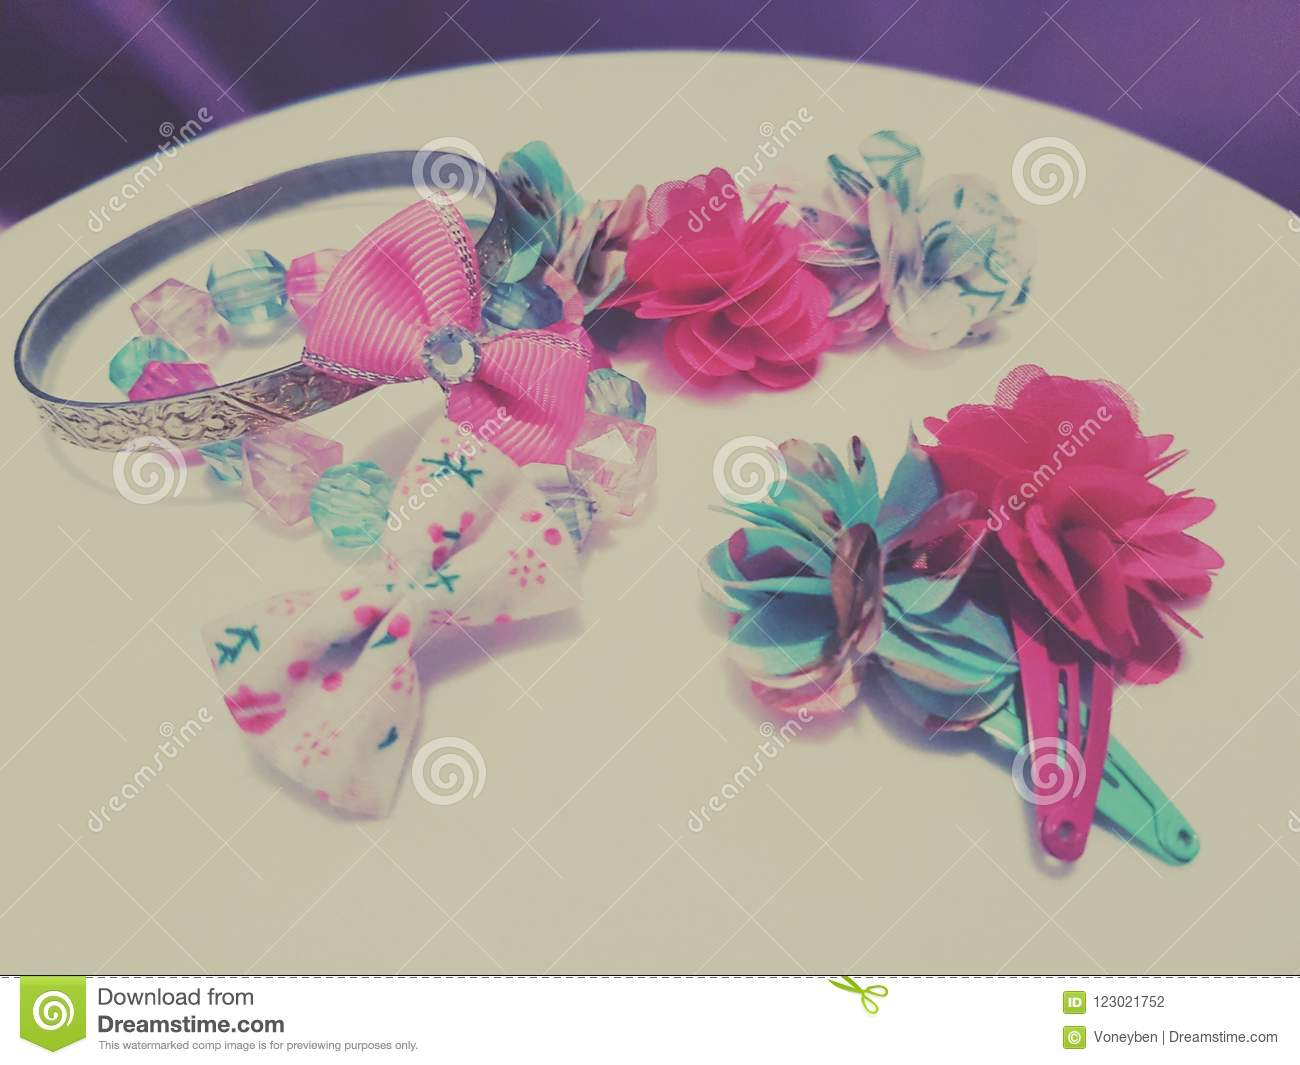 Hair accesories stock photo. Image of bracelets,